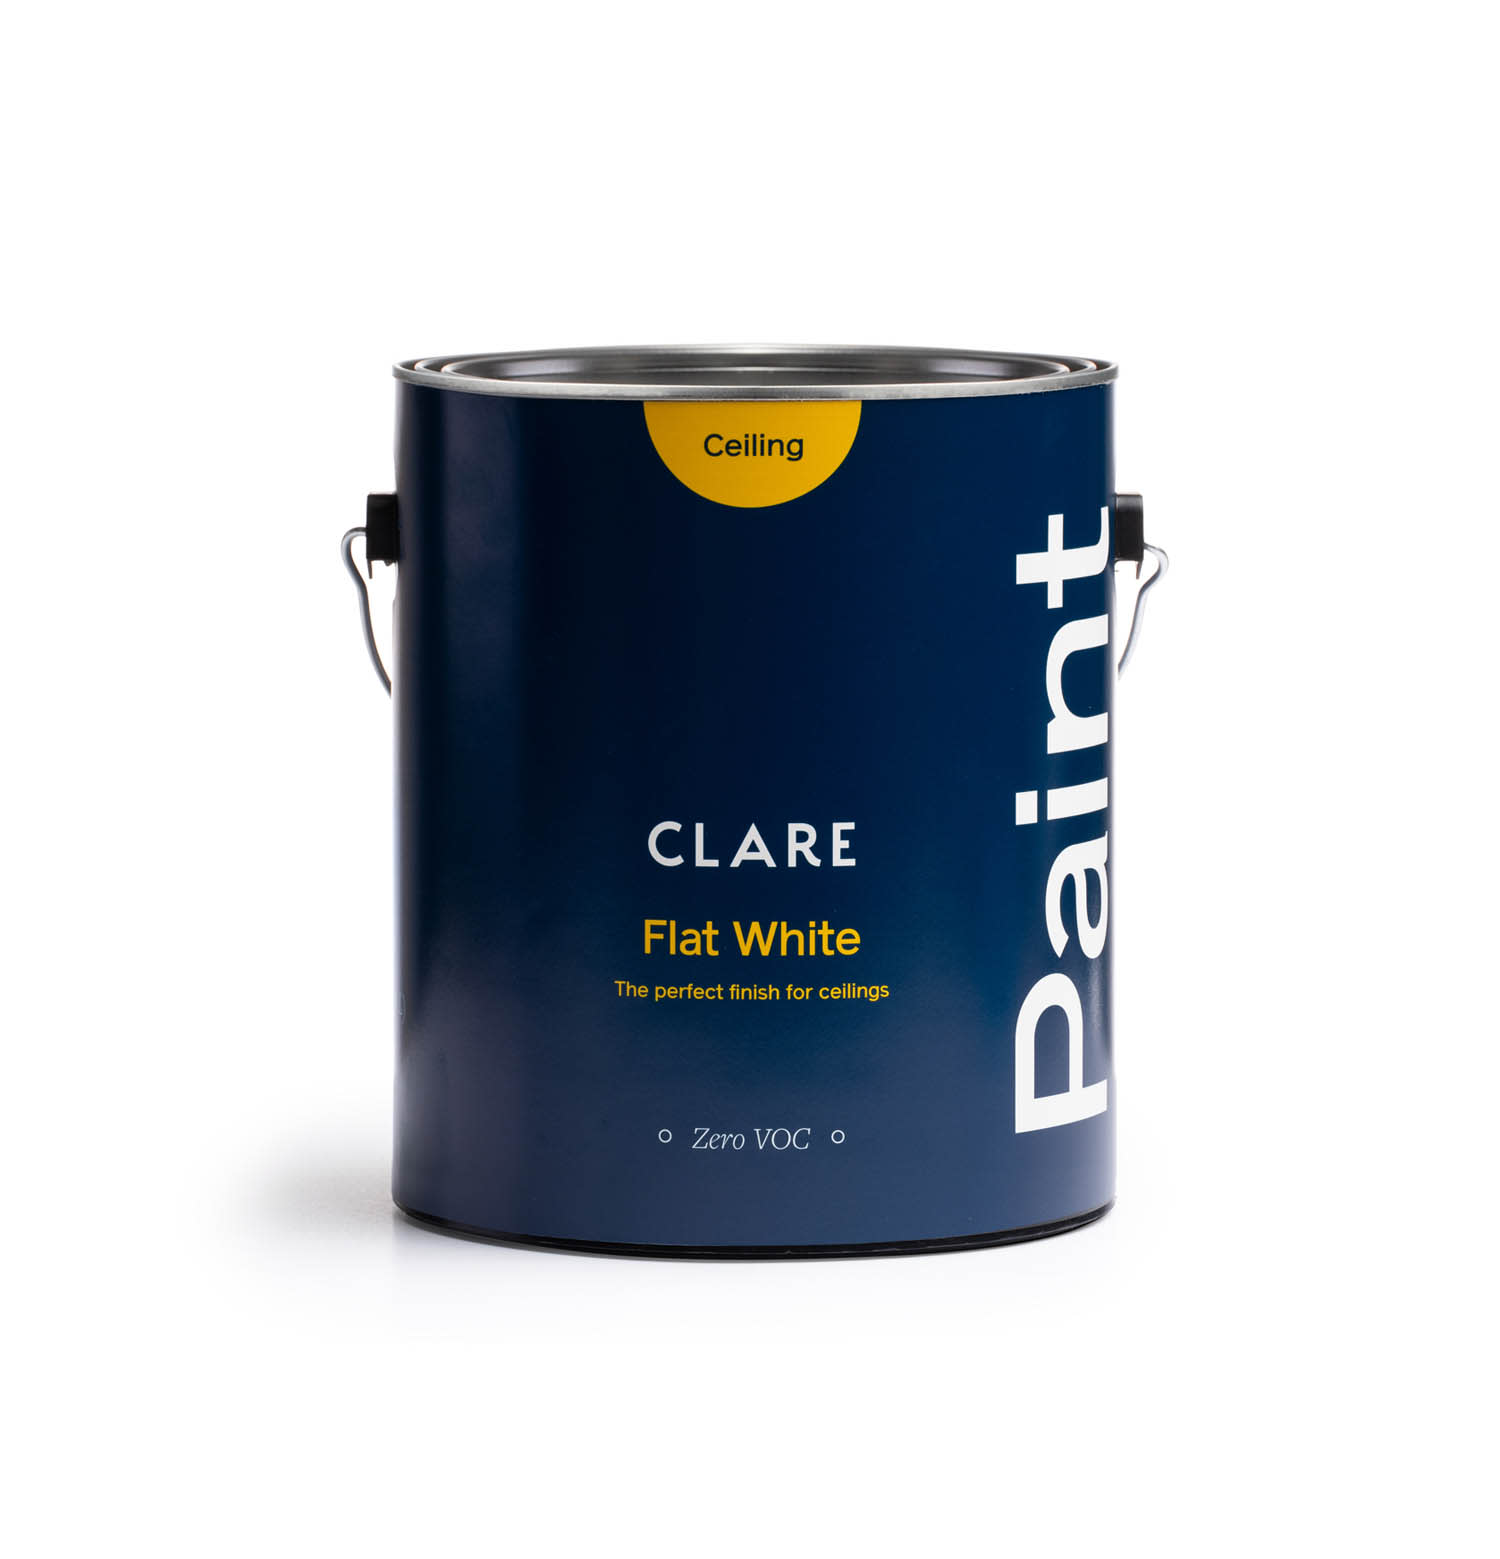 Clare Ceiling Paint